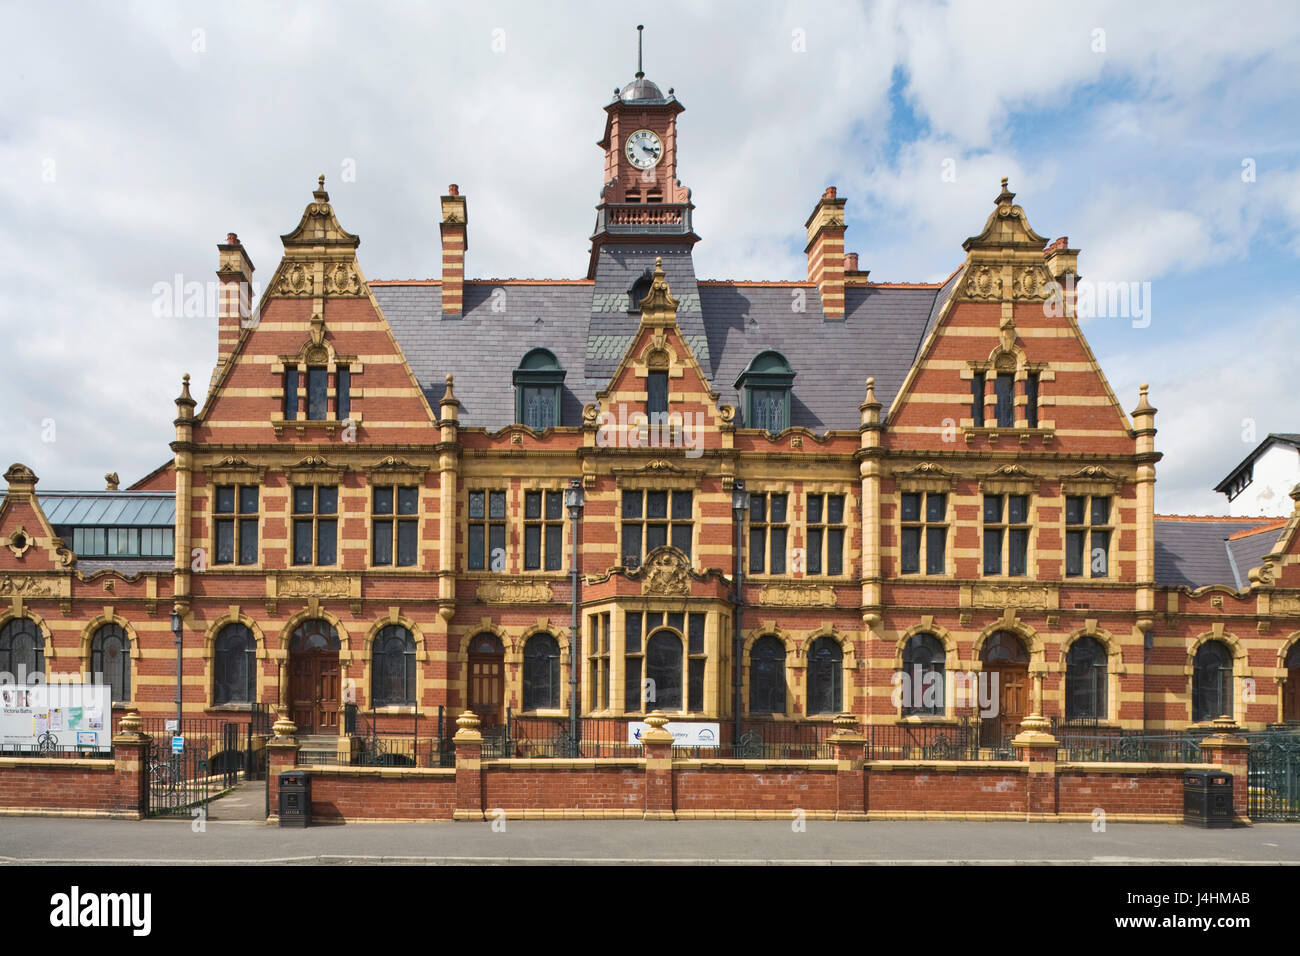 Front elevation across Hathersage Road. Victoria Baths, Manchester, United Kingdom. Architect: Henry Price, 1906. - Stock Image